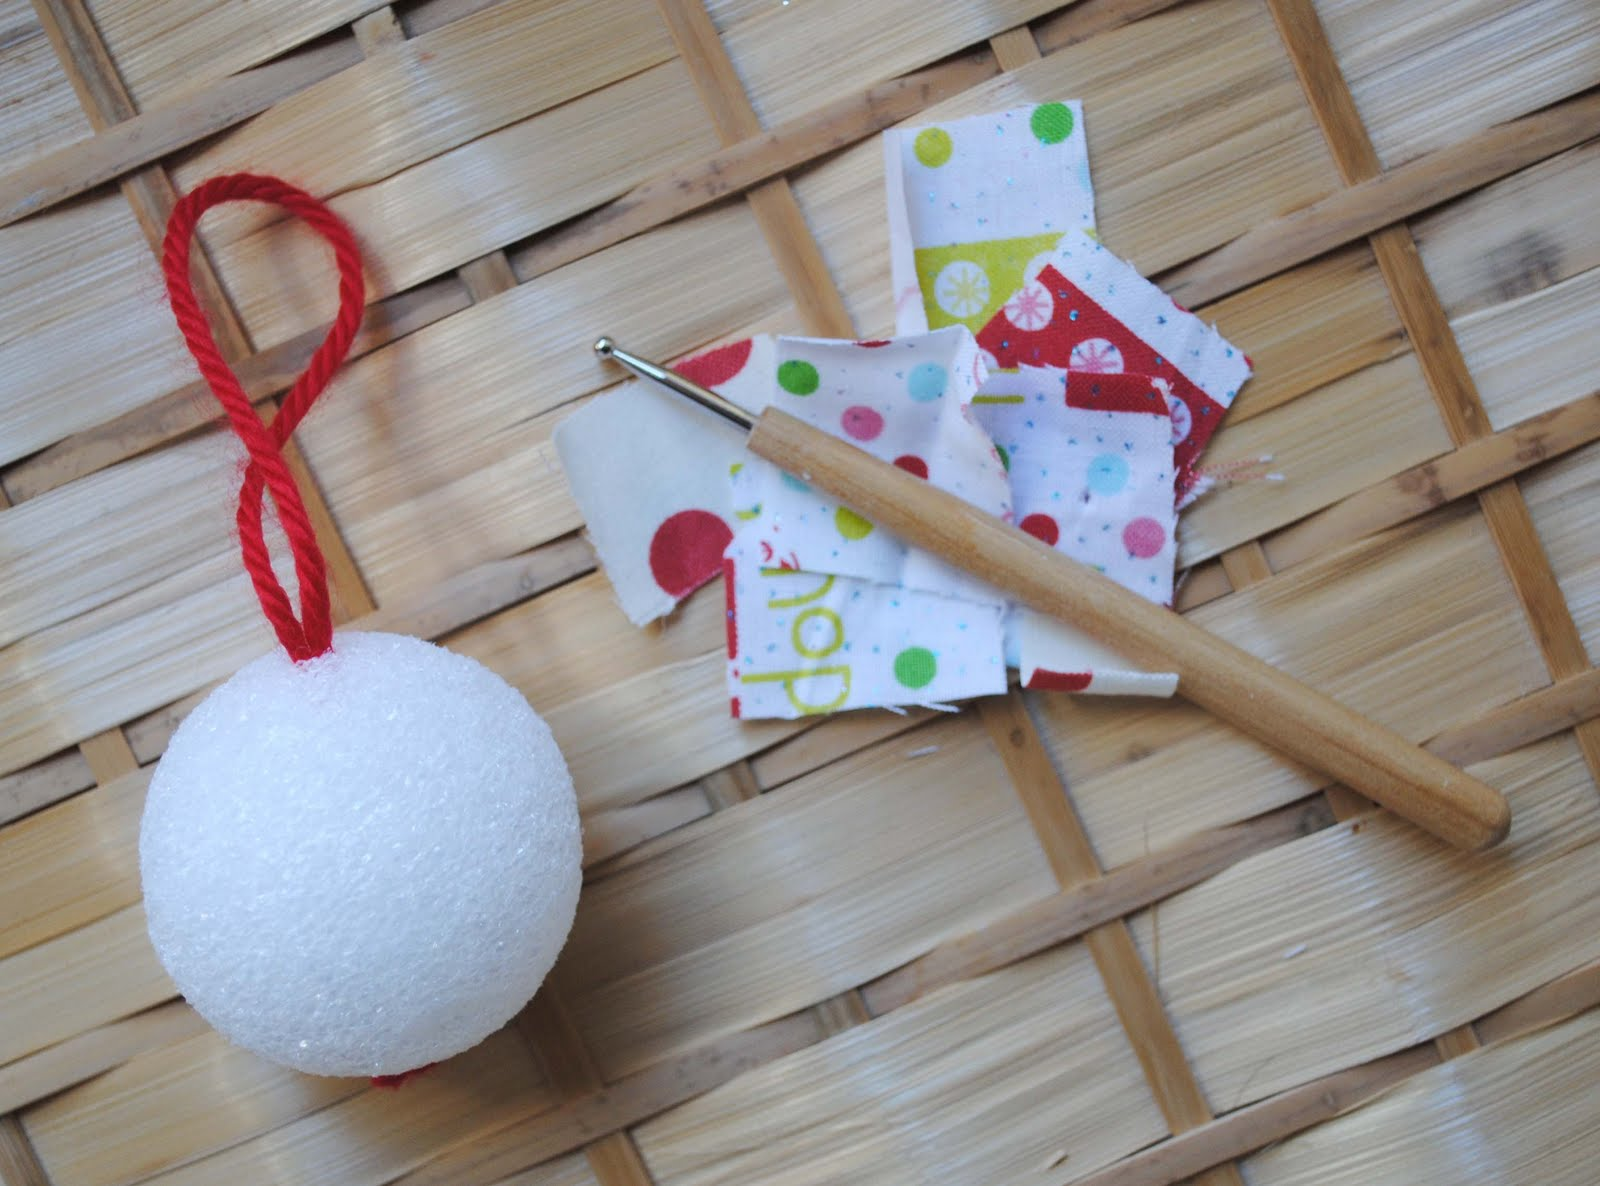 Quilts bags gardens and me kid craft from zakka life for Crafts with styrofoam balls for kids